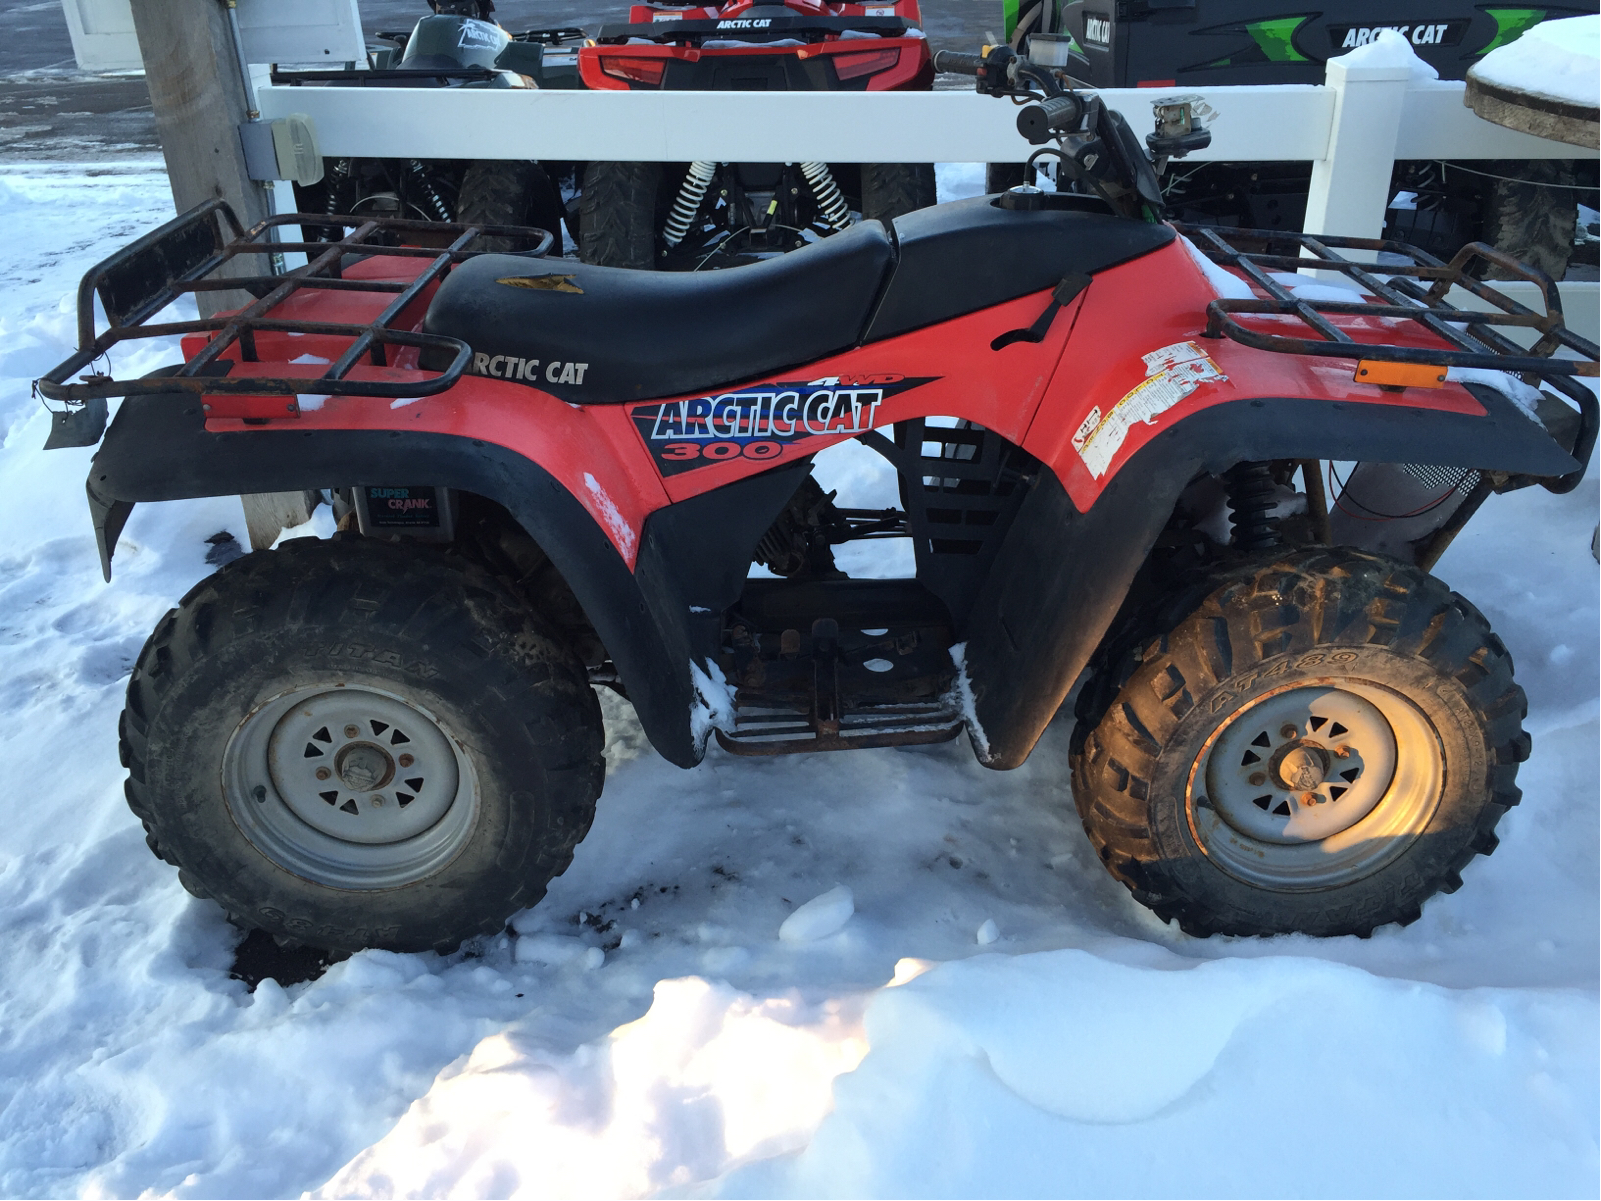 arctic cat 300 4x4 pics specs and list of seriess by year. Black Bedroom Furniture Sets. Home Design Ideas